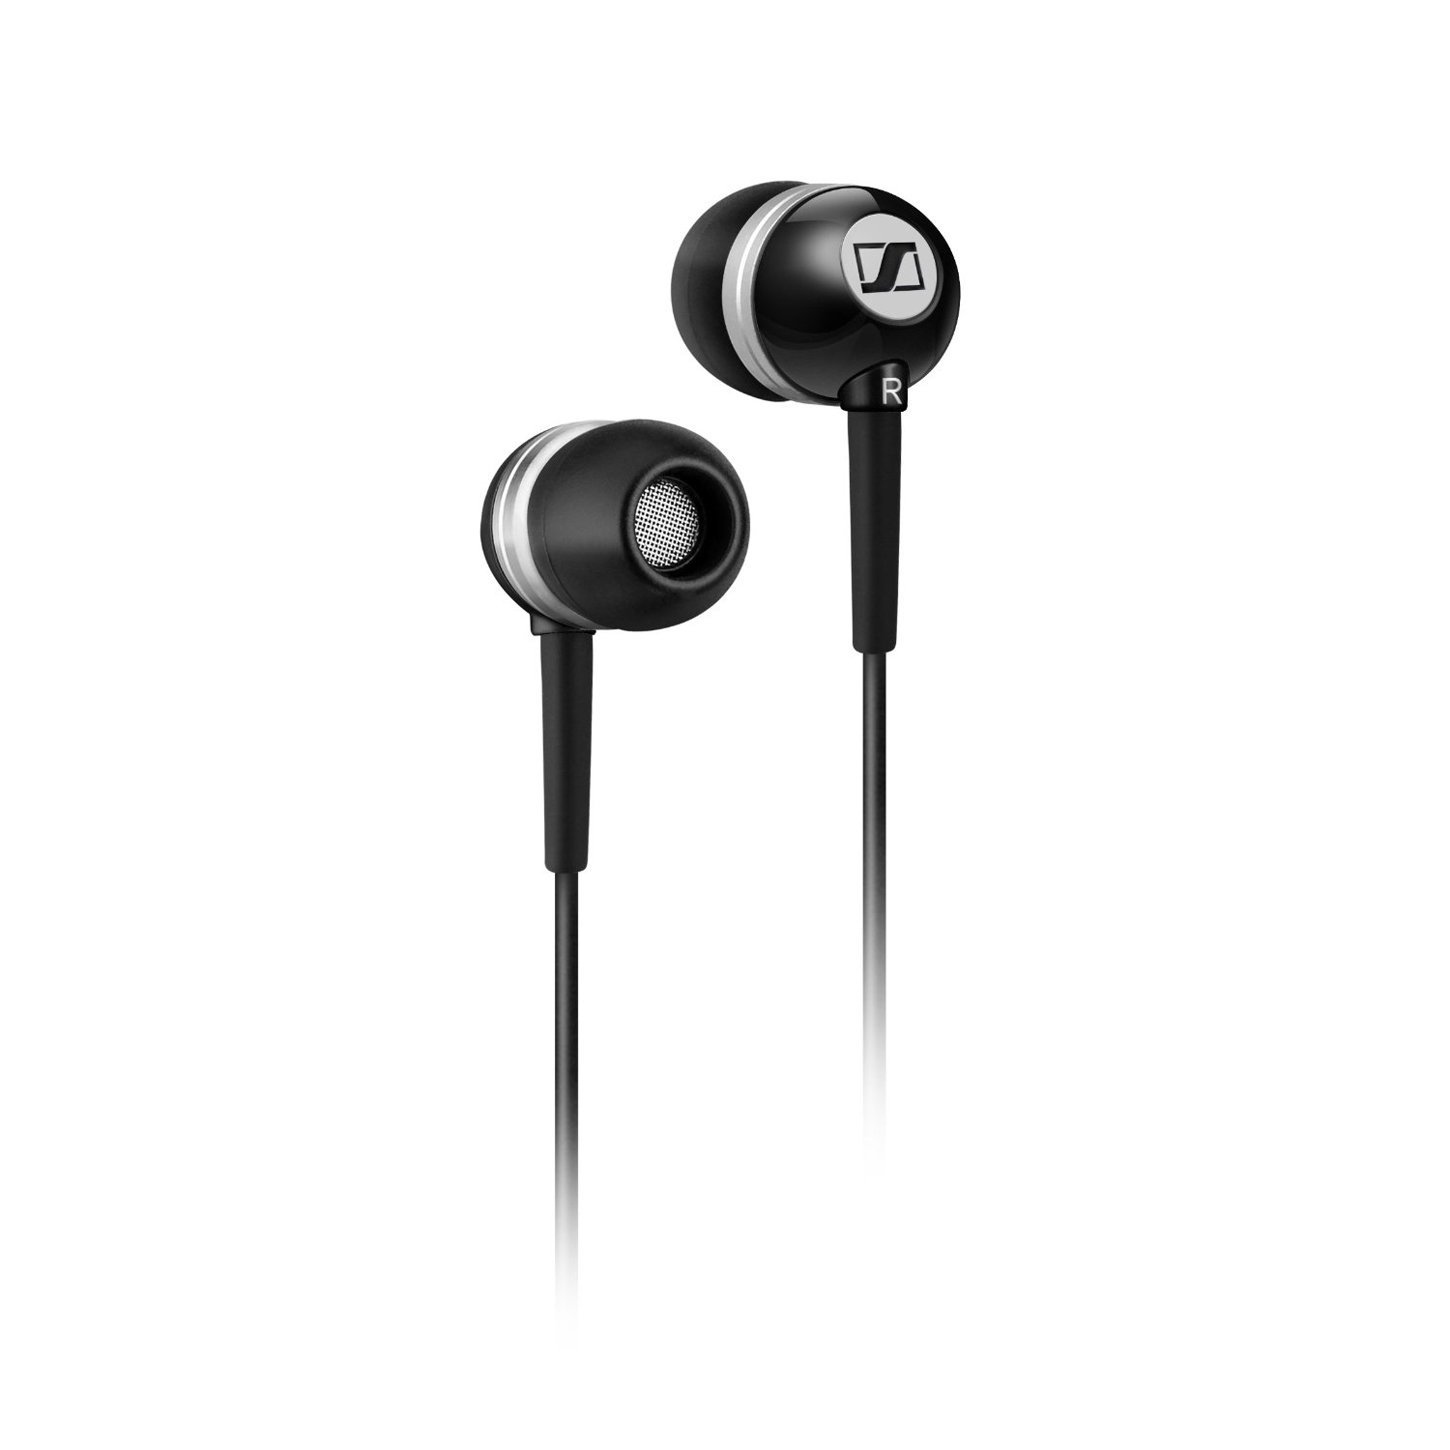 Sennheiser CX300 II Precision Enhanced Bass Earbuds